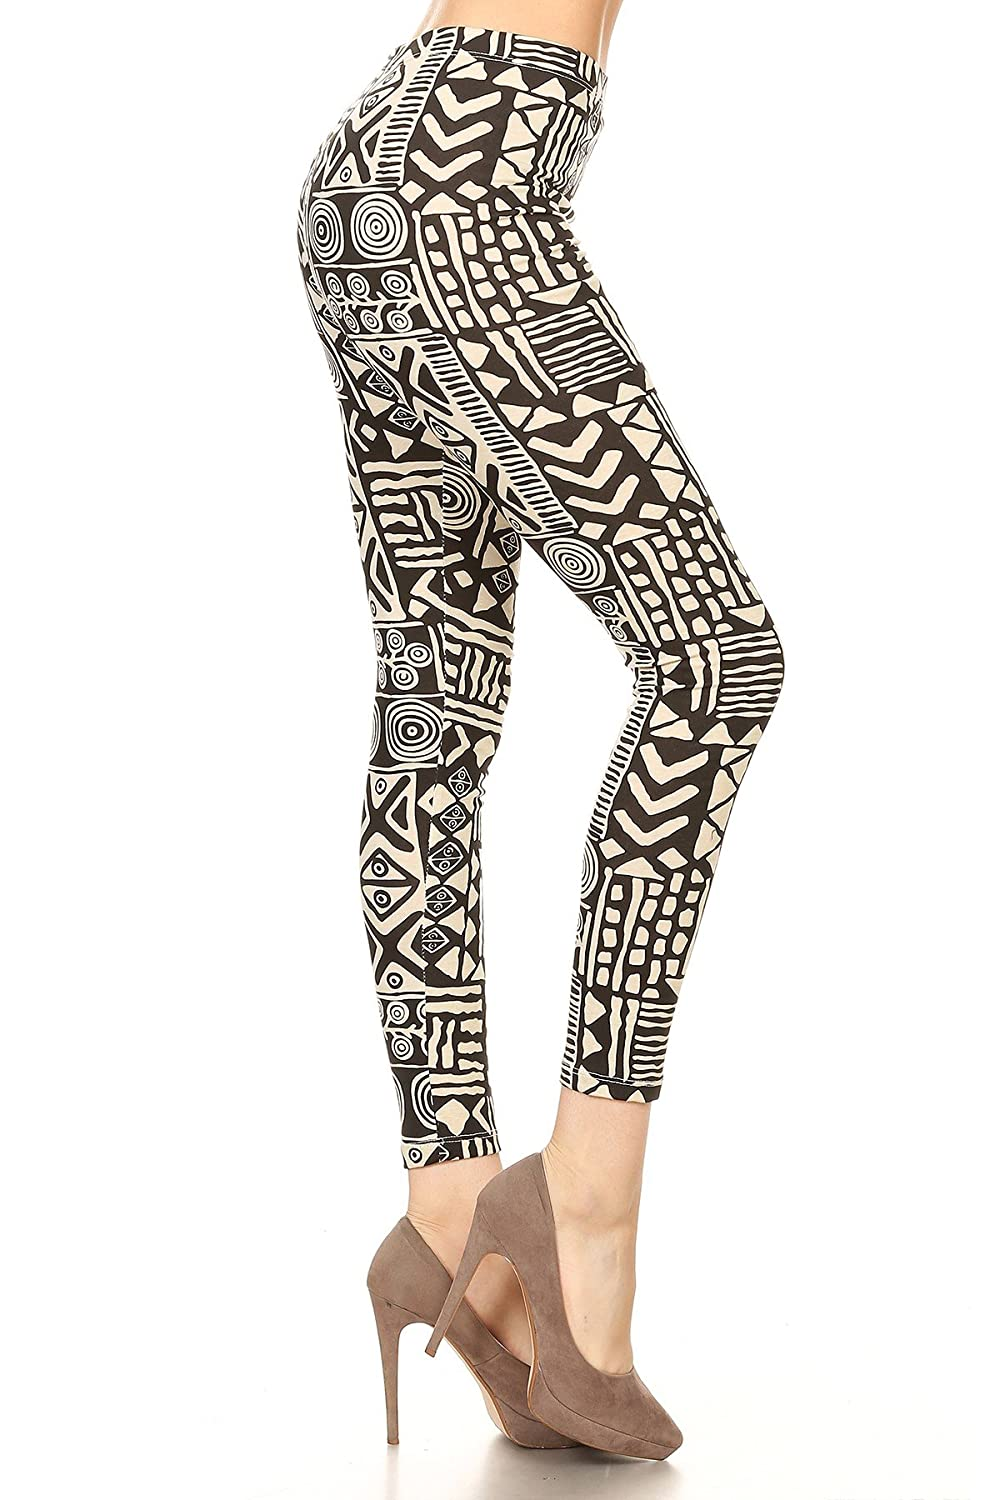 0d23015f45a81 Rue 21 Rue21 Aztec Print High Waist Yoga Pants (Large) at Amazon Women's  Clothing store: